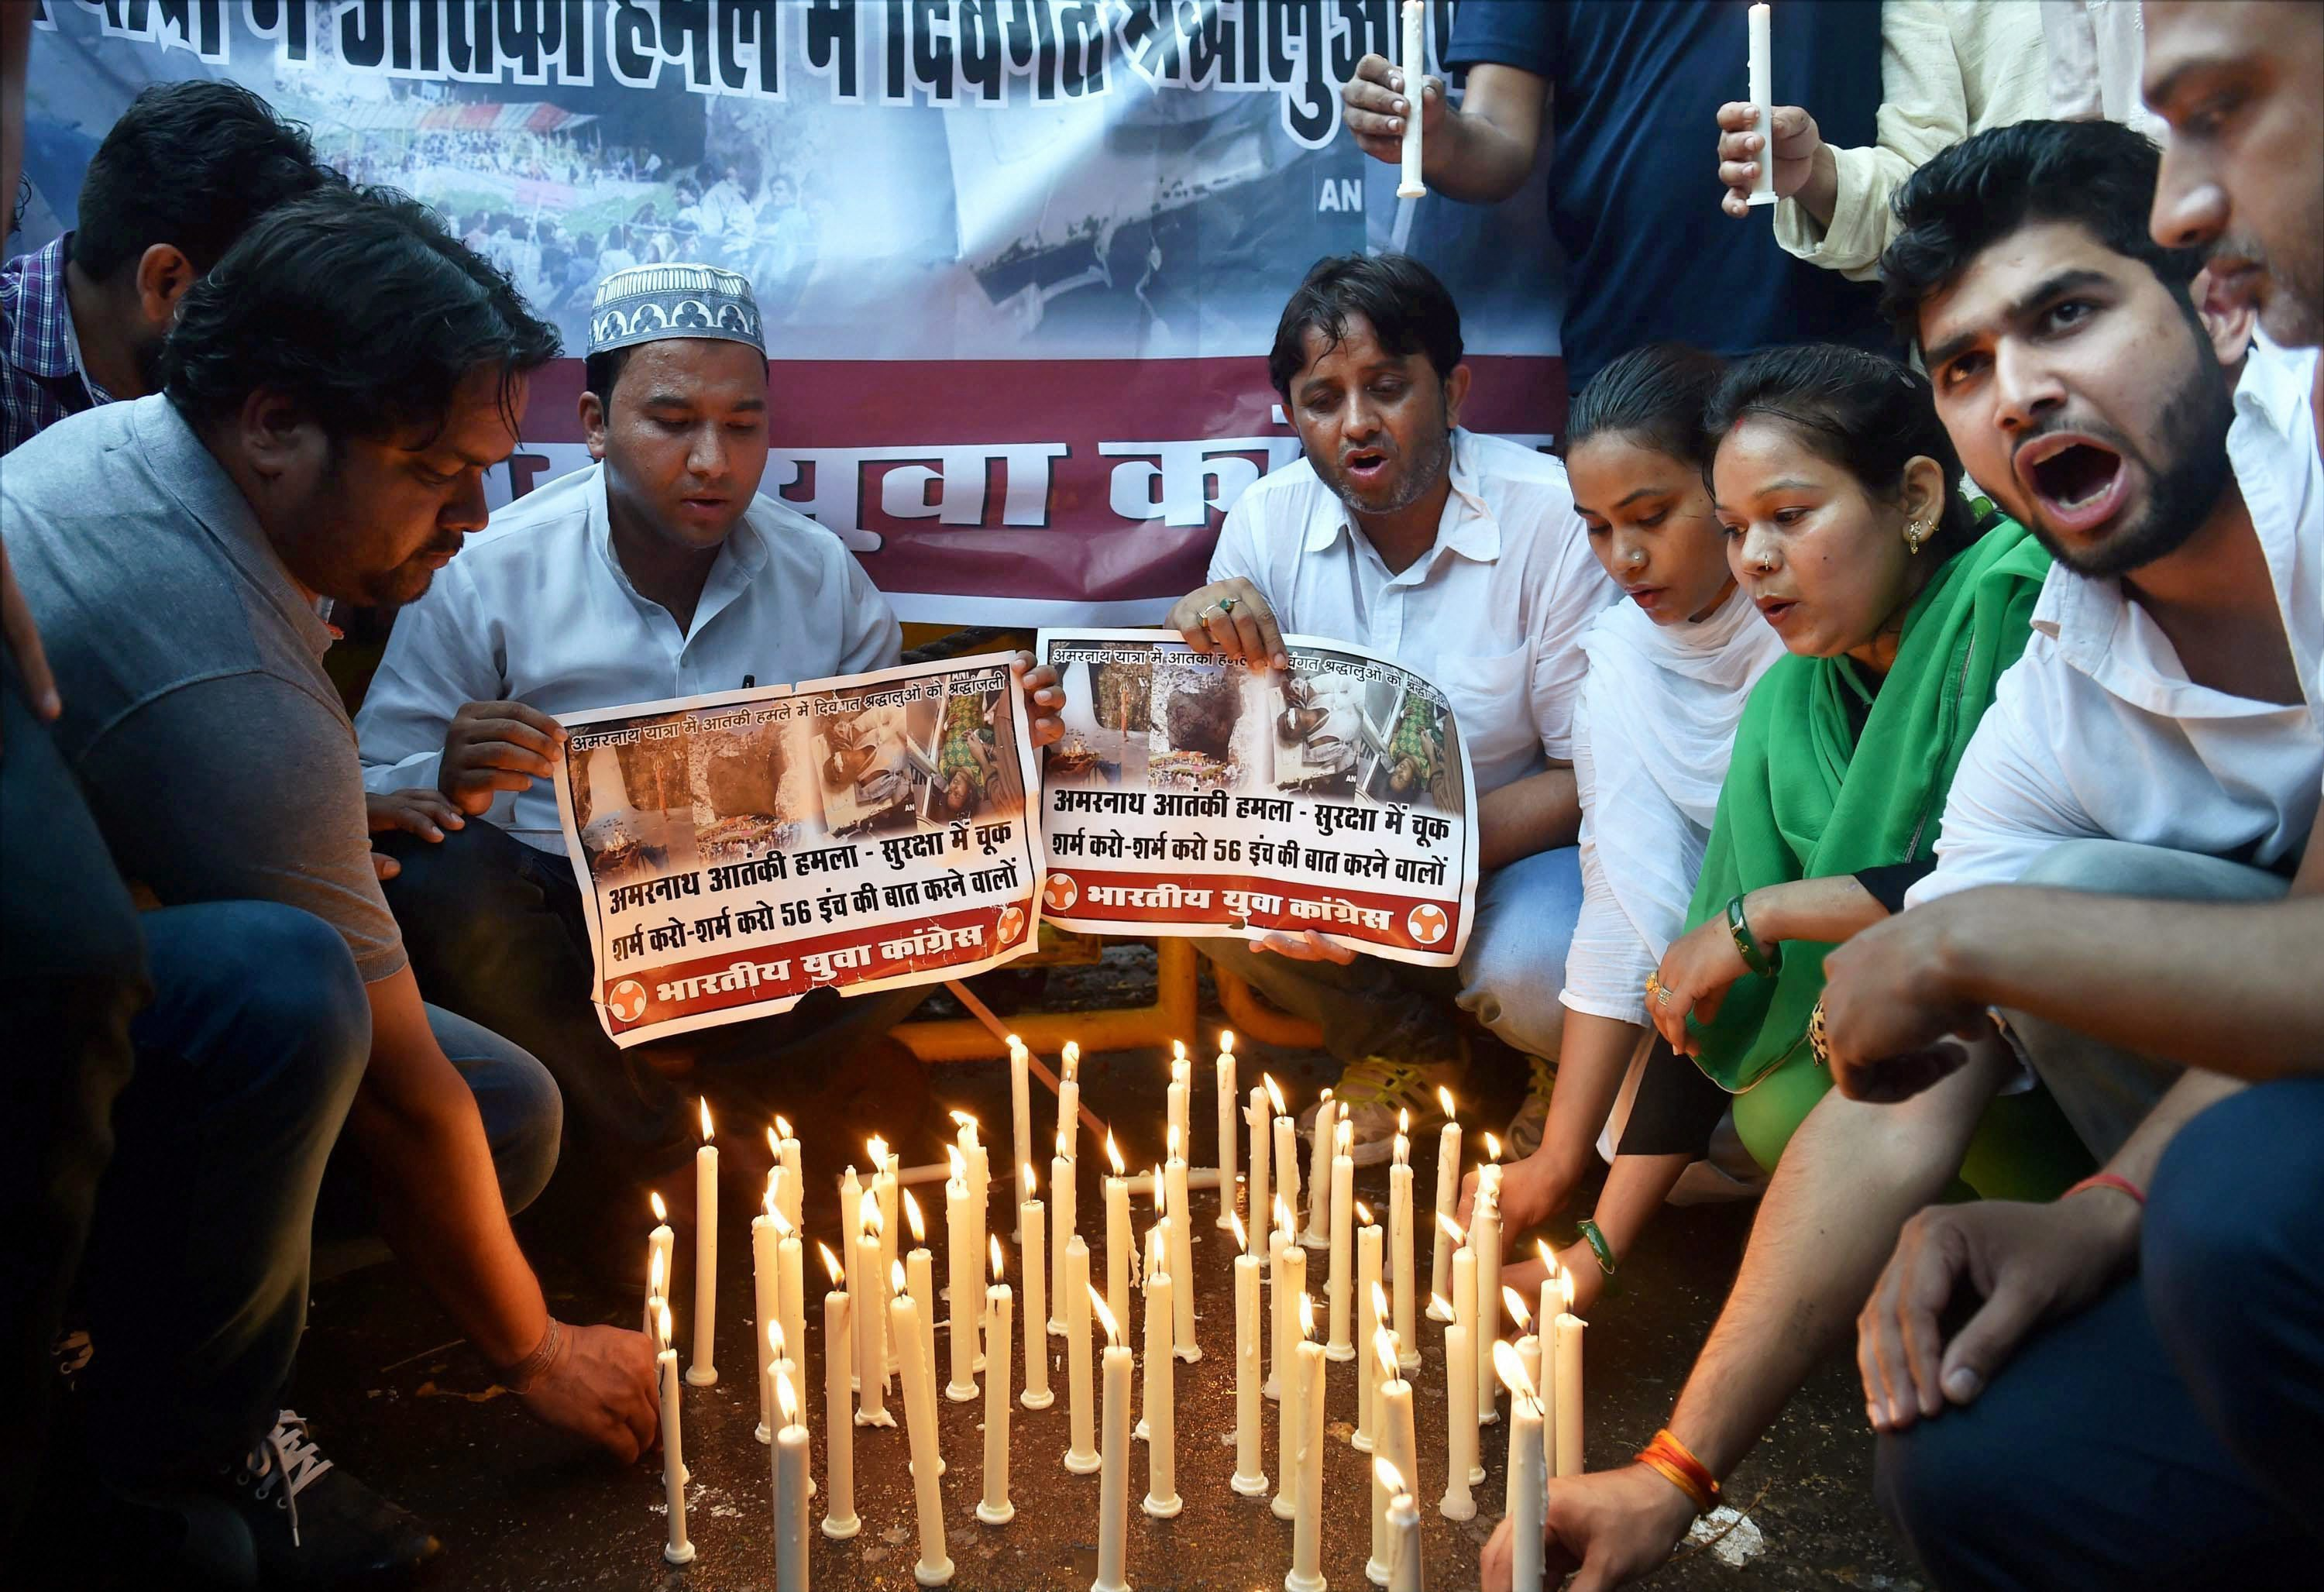 Youth Congress activists hold placards and light candles at a demonstration in New Delhi. (Pic: PTI)